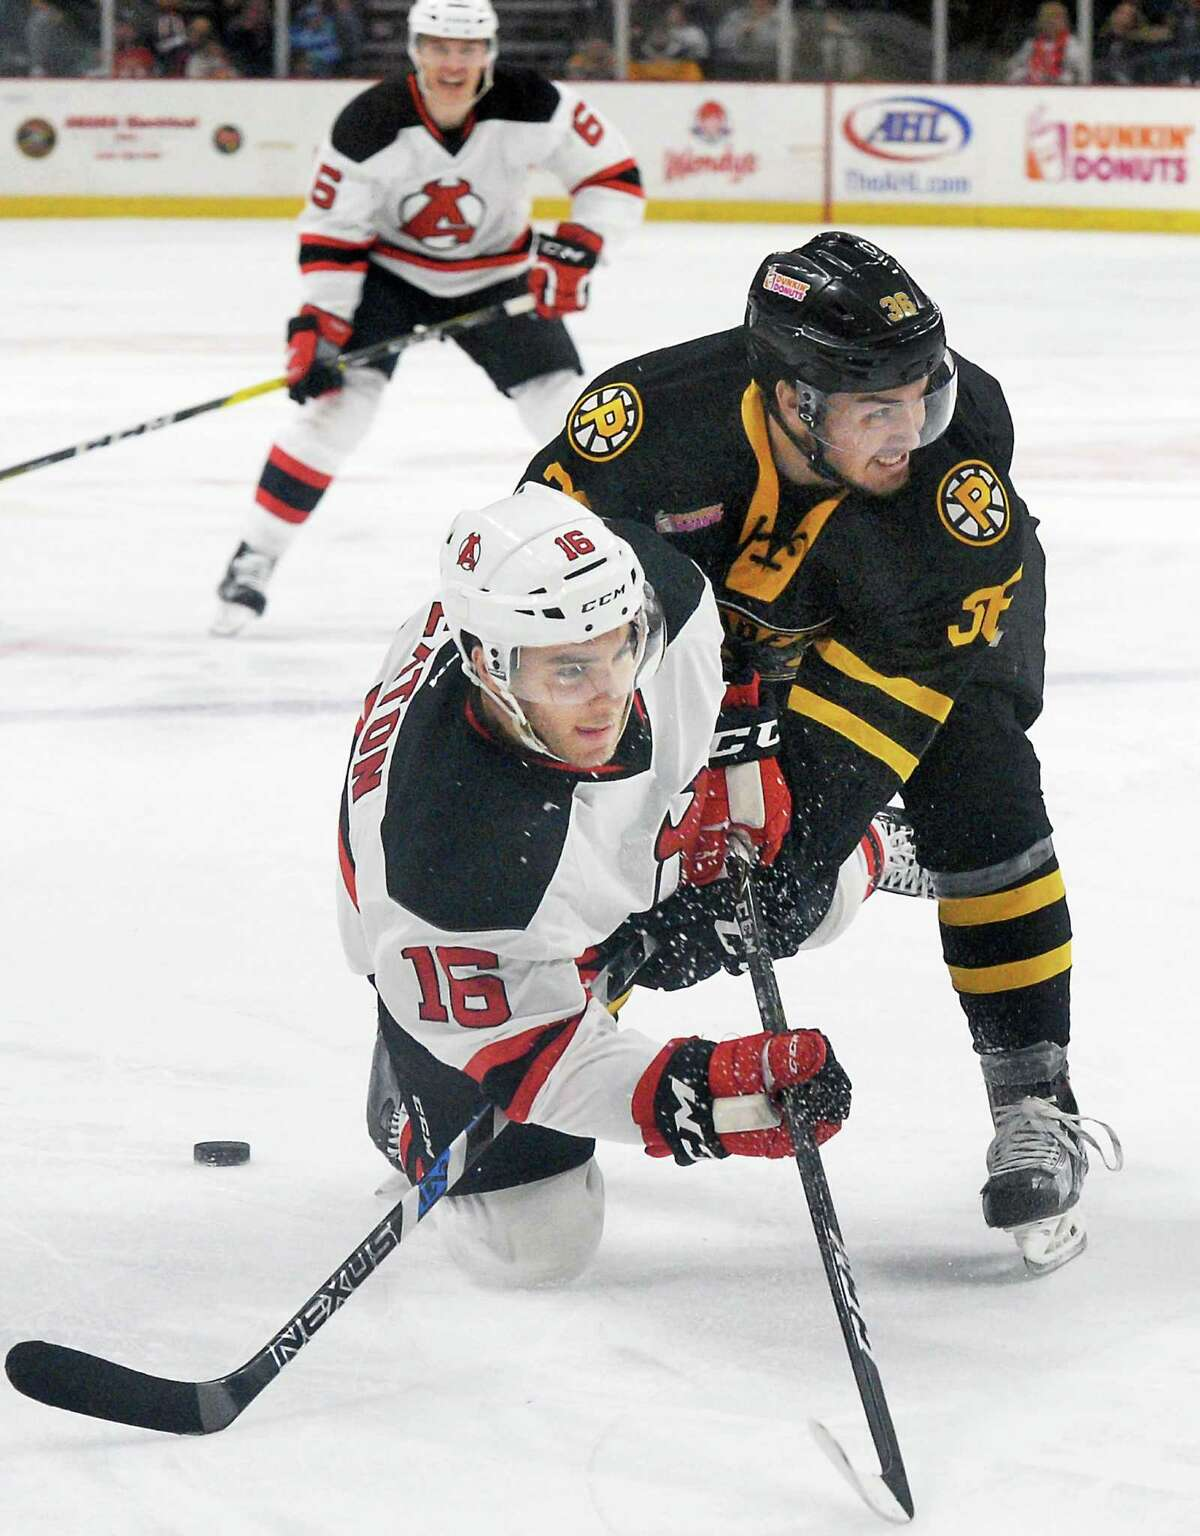 Albany Devils' #16 Ben Sexton, left, and Providence Bruins' #36 Zac Rinaldo tangle during Saturday's game at the Times Union Center Dec. 10, 2016 in Albany, NY. (John Carl D'Annibale / Times Union)